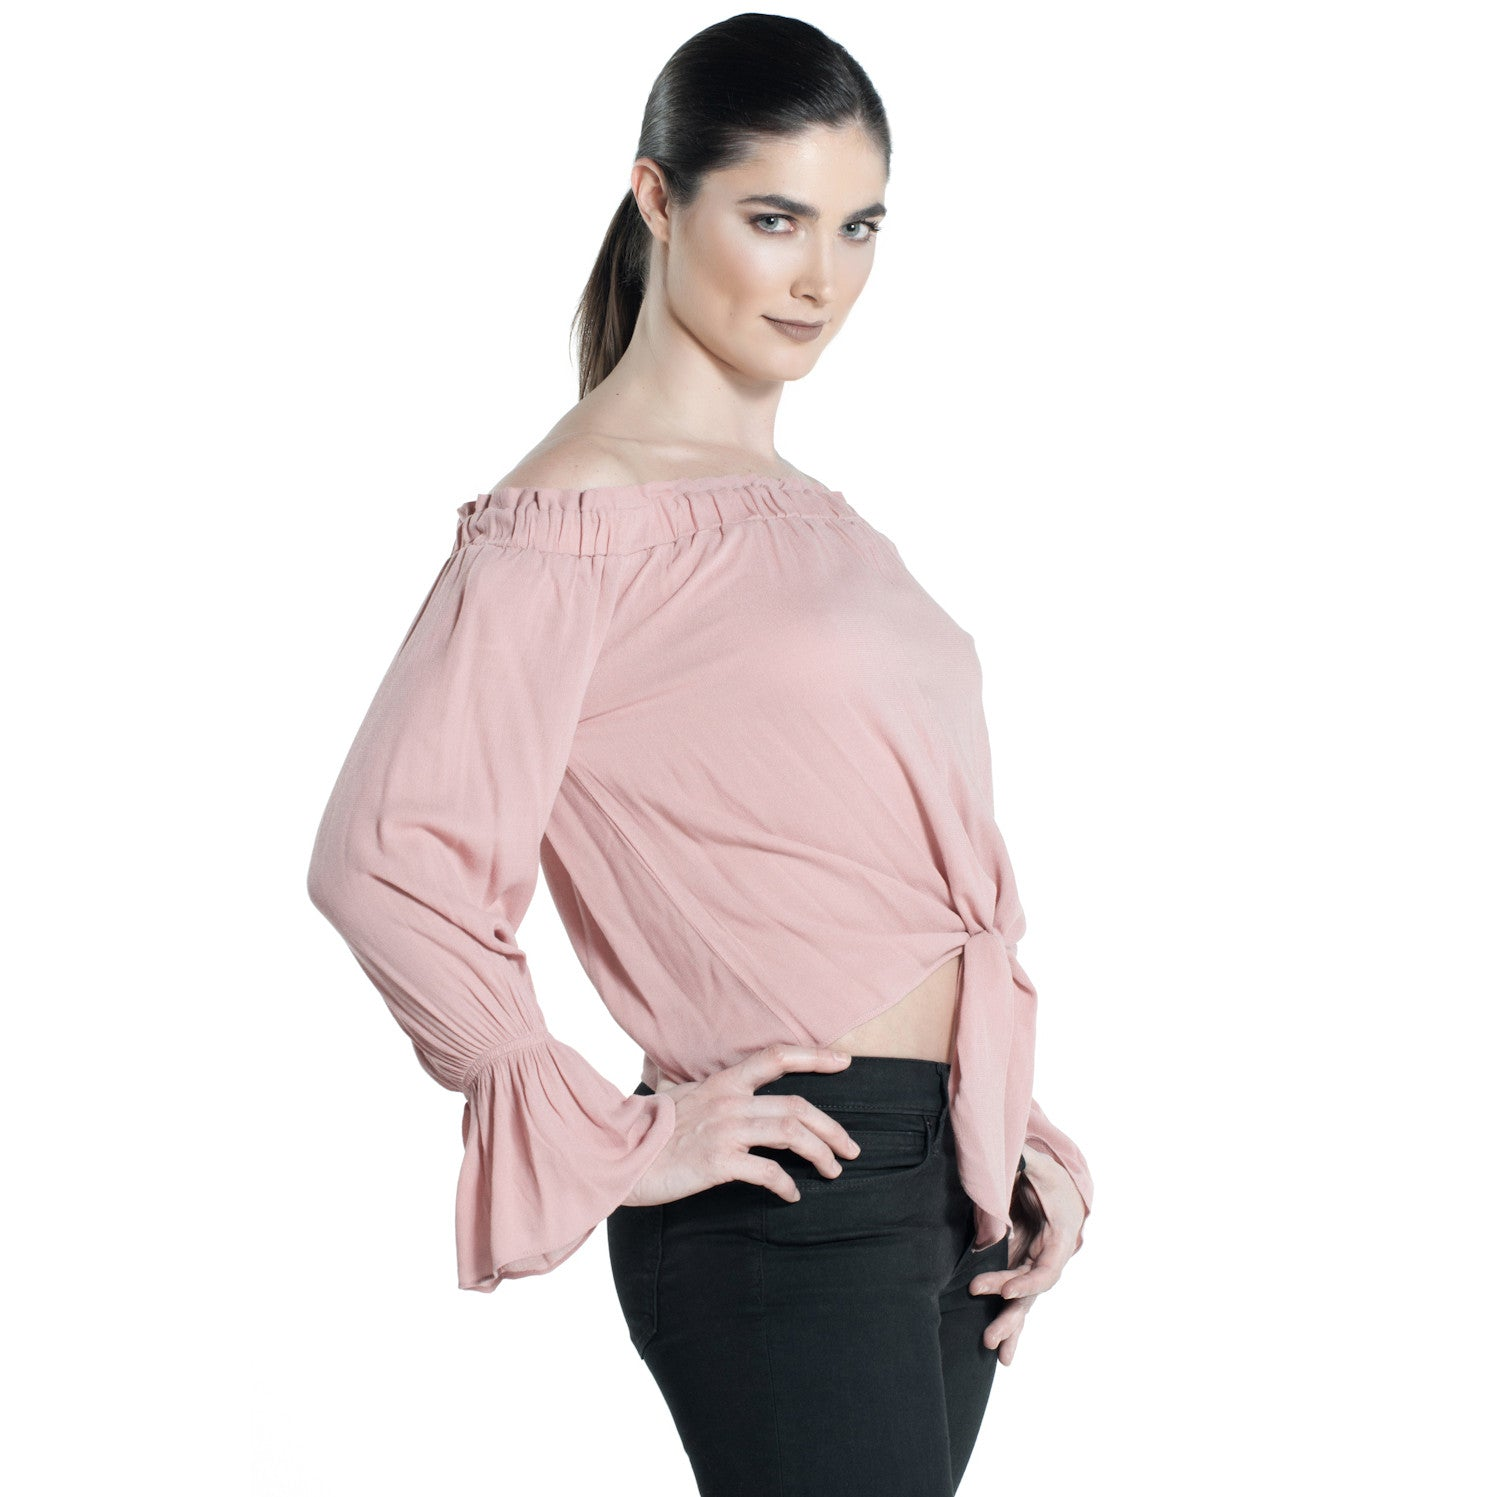 TOPANGA TOP IN BLUSH